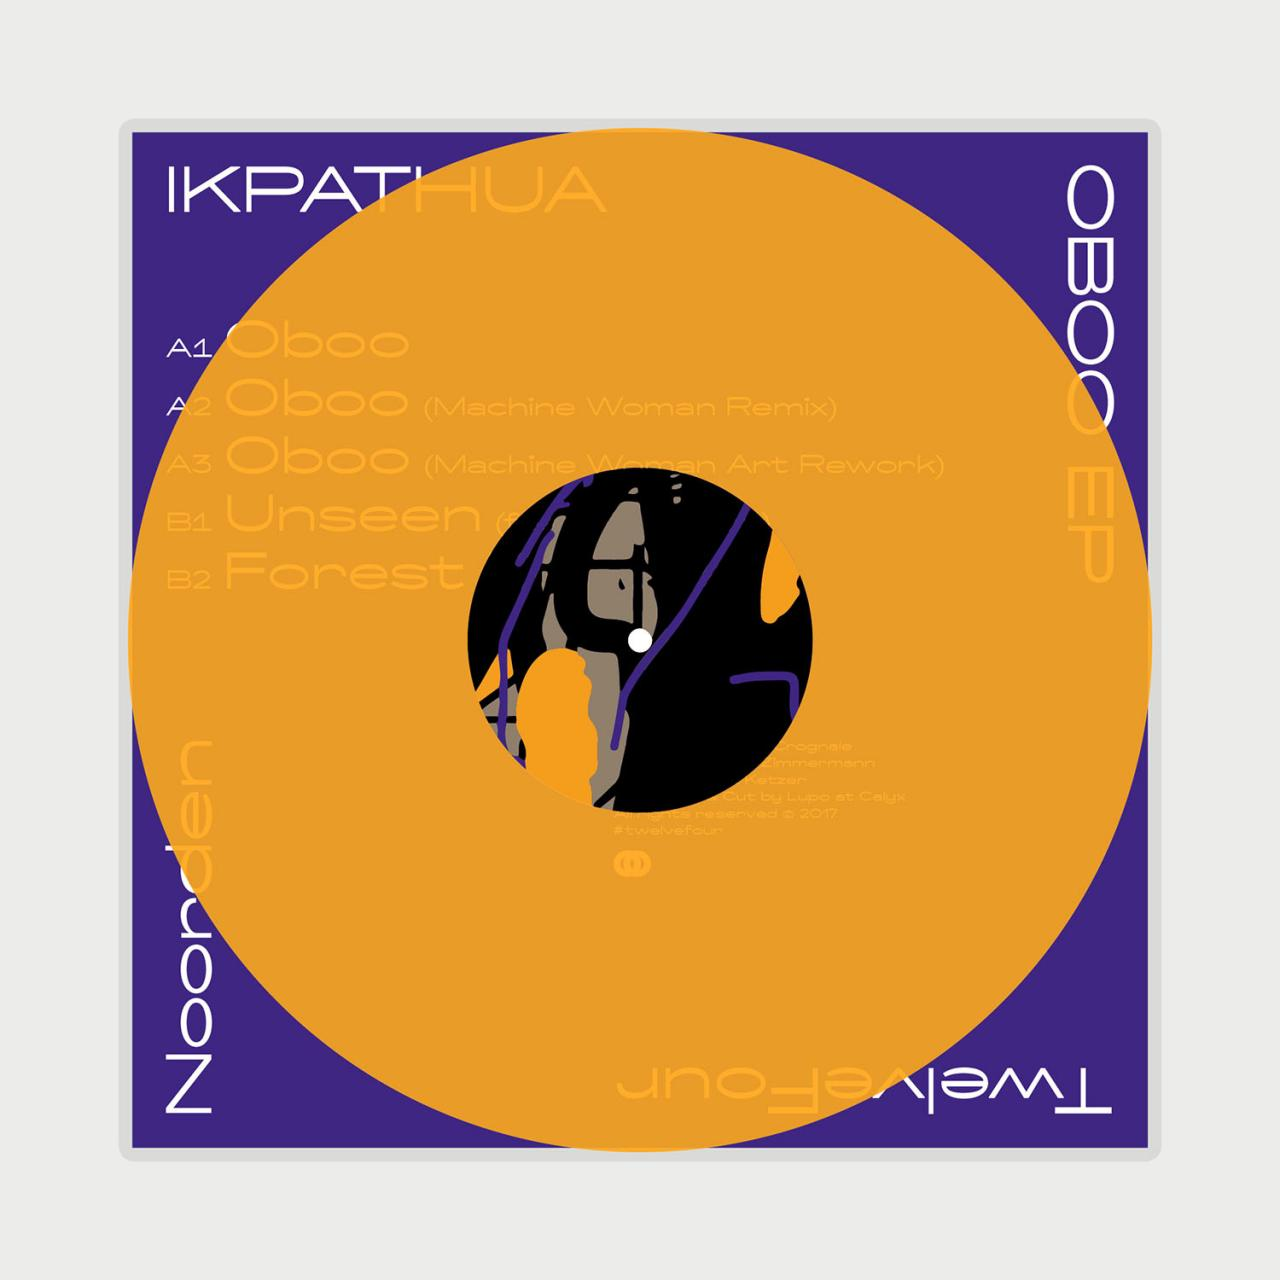 NOORDEN Ikpathua – Oboo EP (w/ Machine Woman Remixes)